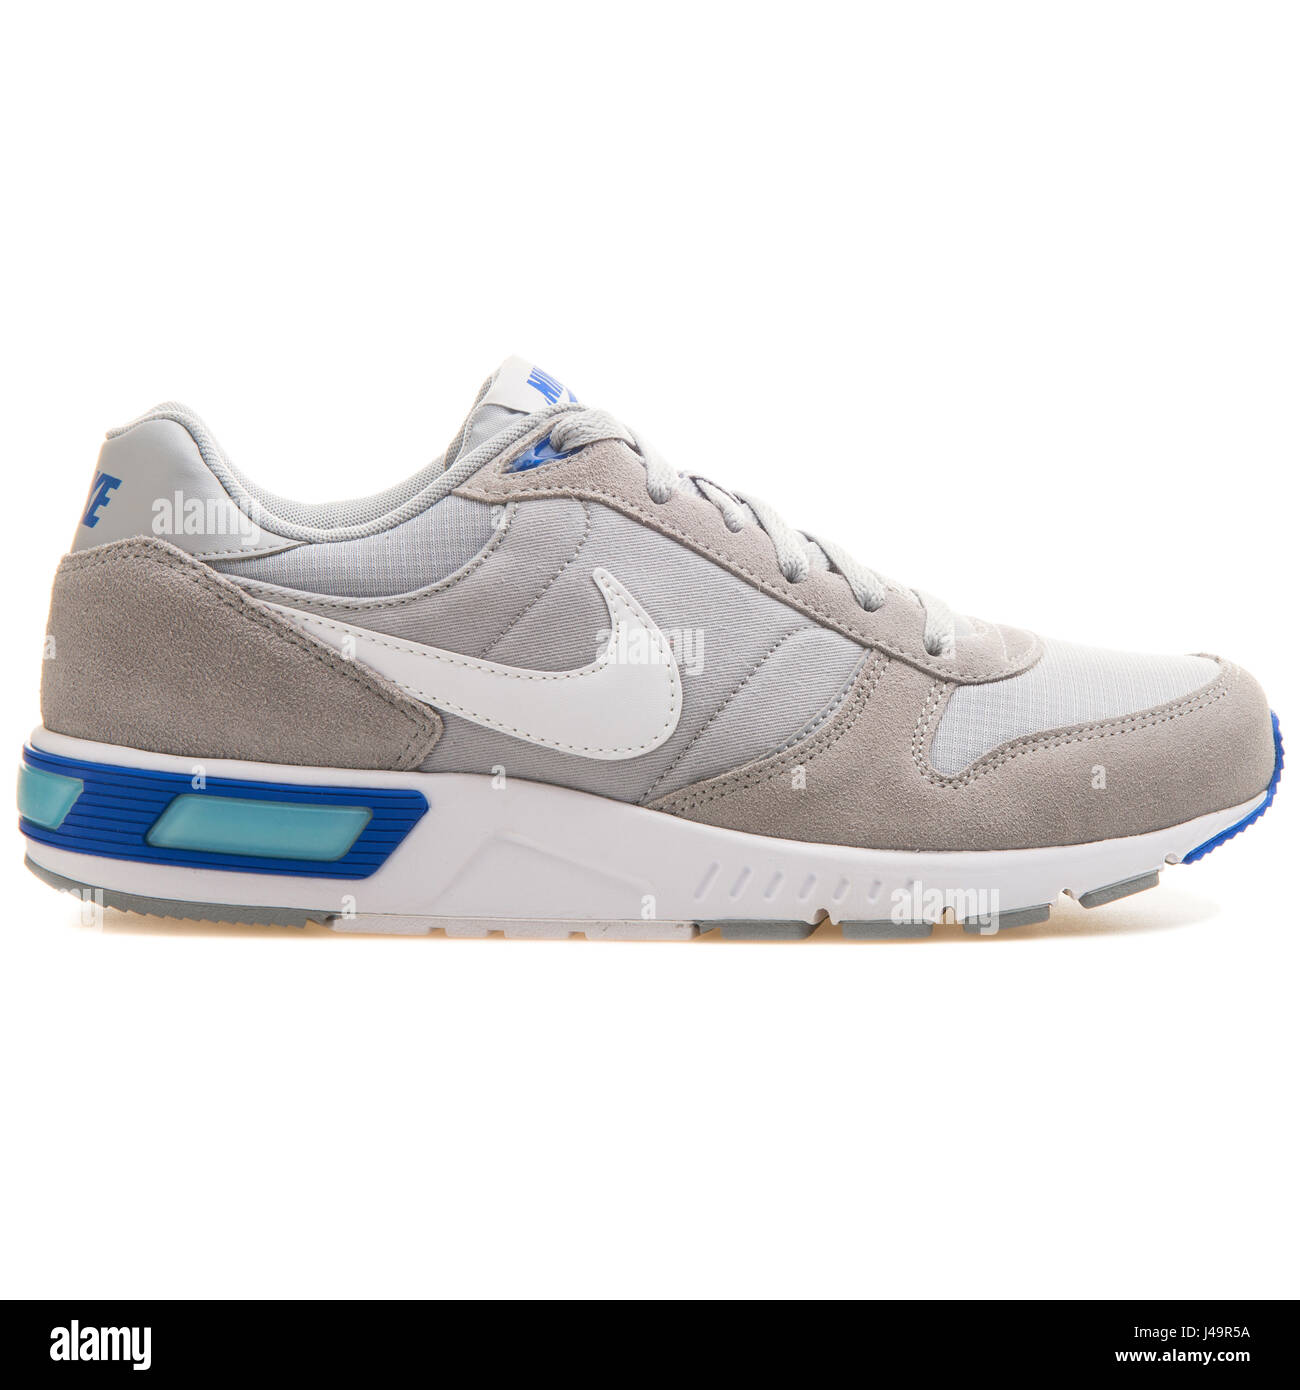 Nike Nightgazer Grey 644402 014 Stock Photo: 140357318 Alamy